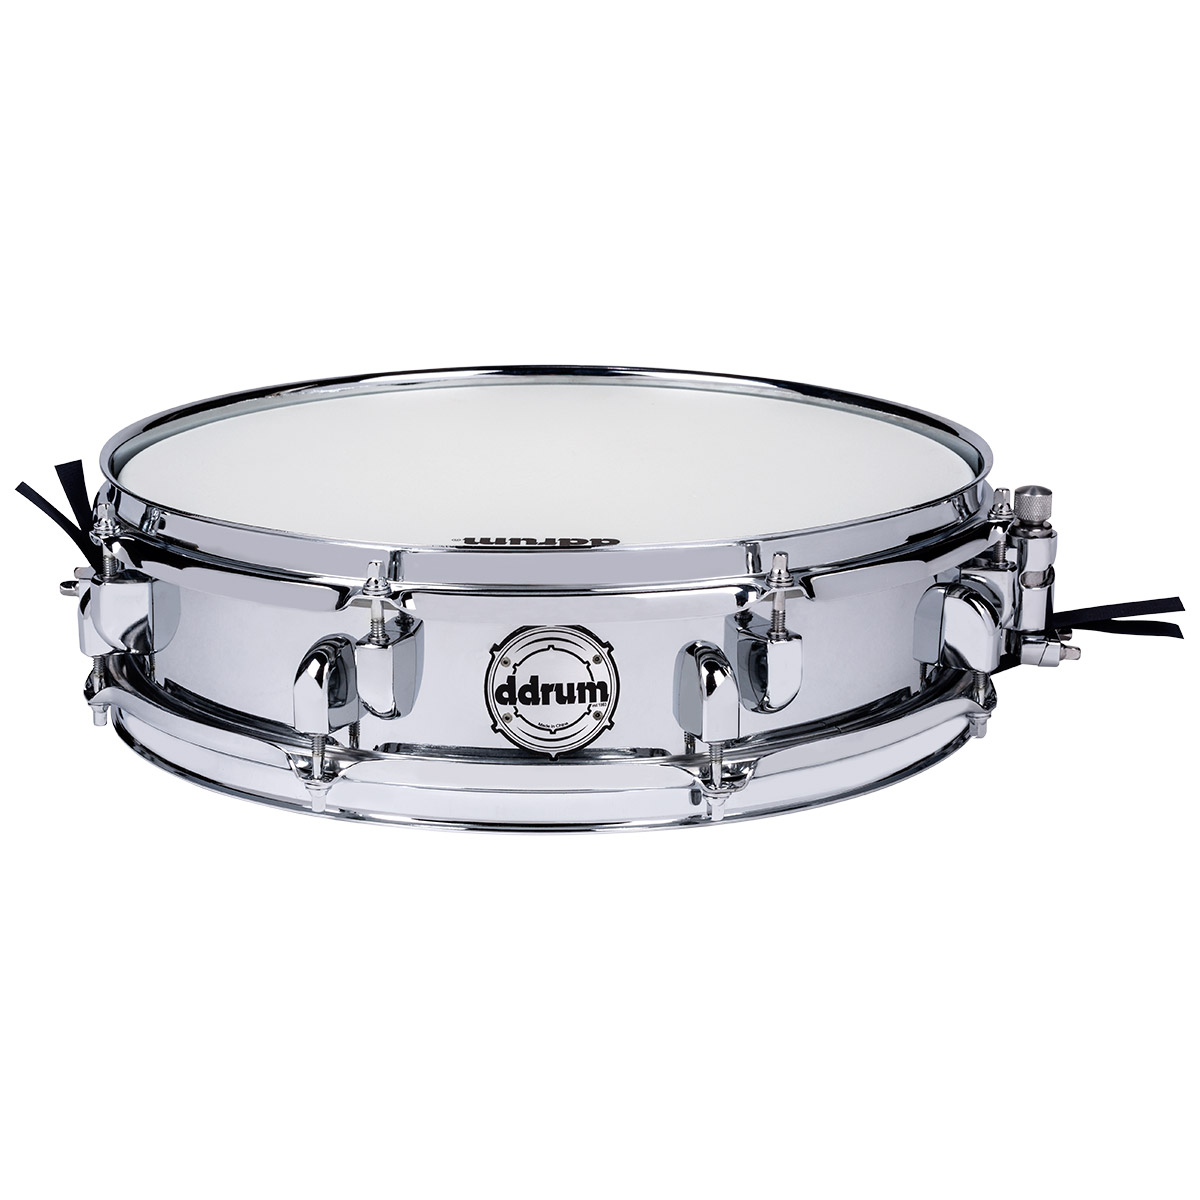 ddrum 3.5x14 Modern Tone Steel Piccolo Snare Drum by ddrum